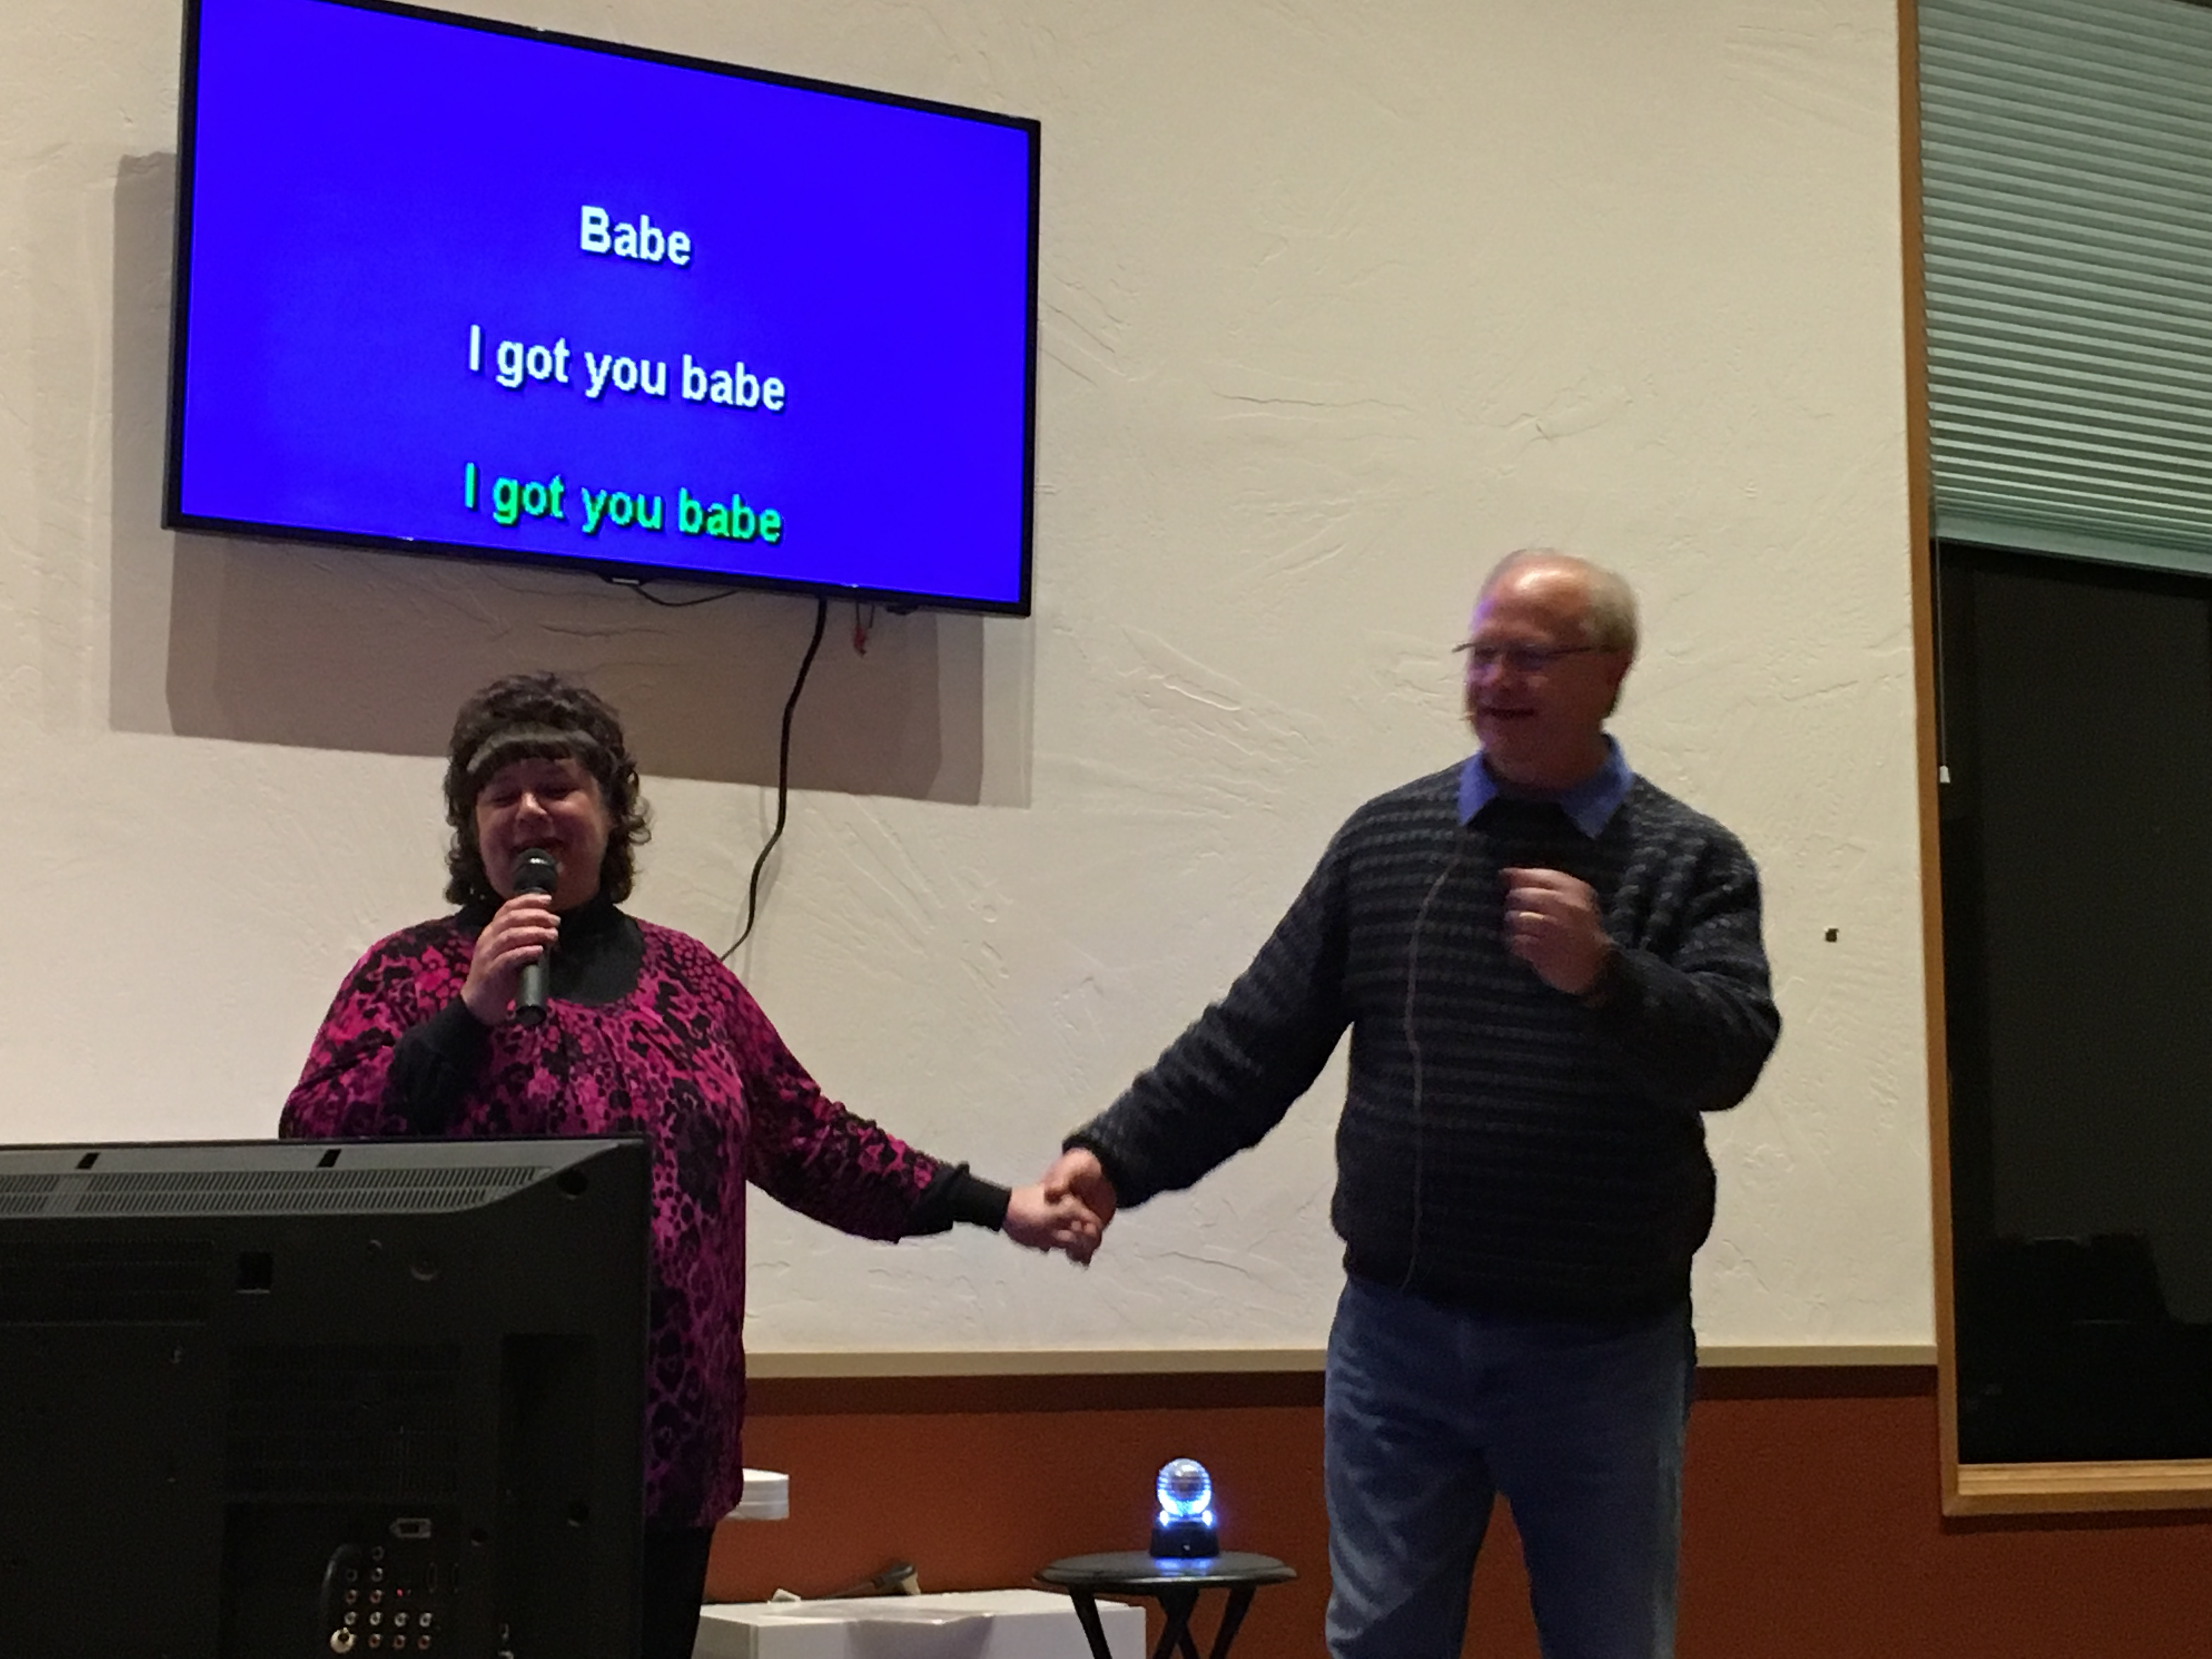 Lent Photo for the Day - Love  Those that Karaoke Together, Stay